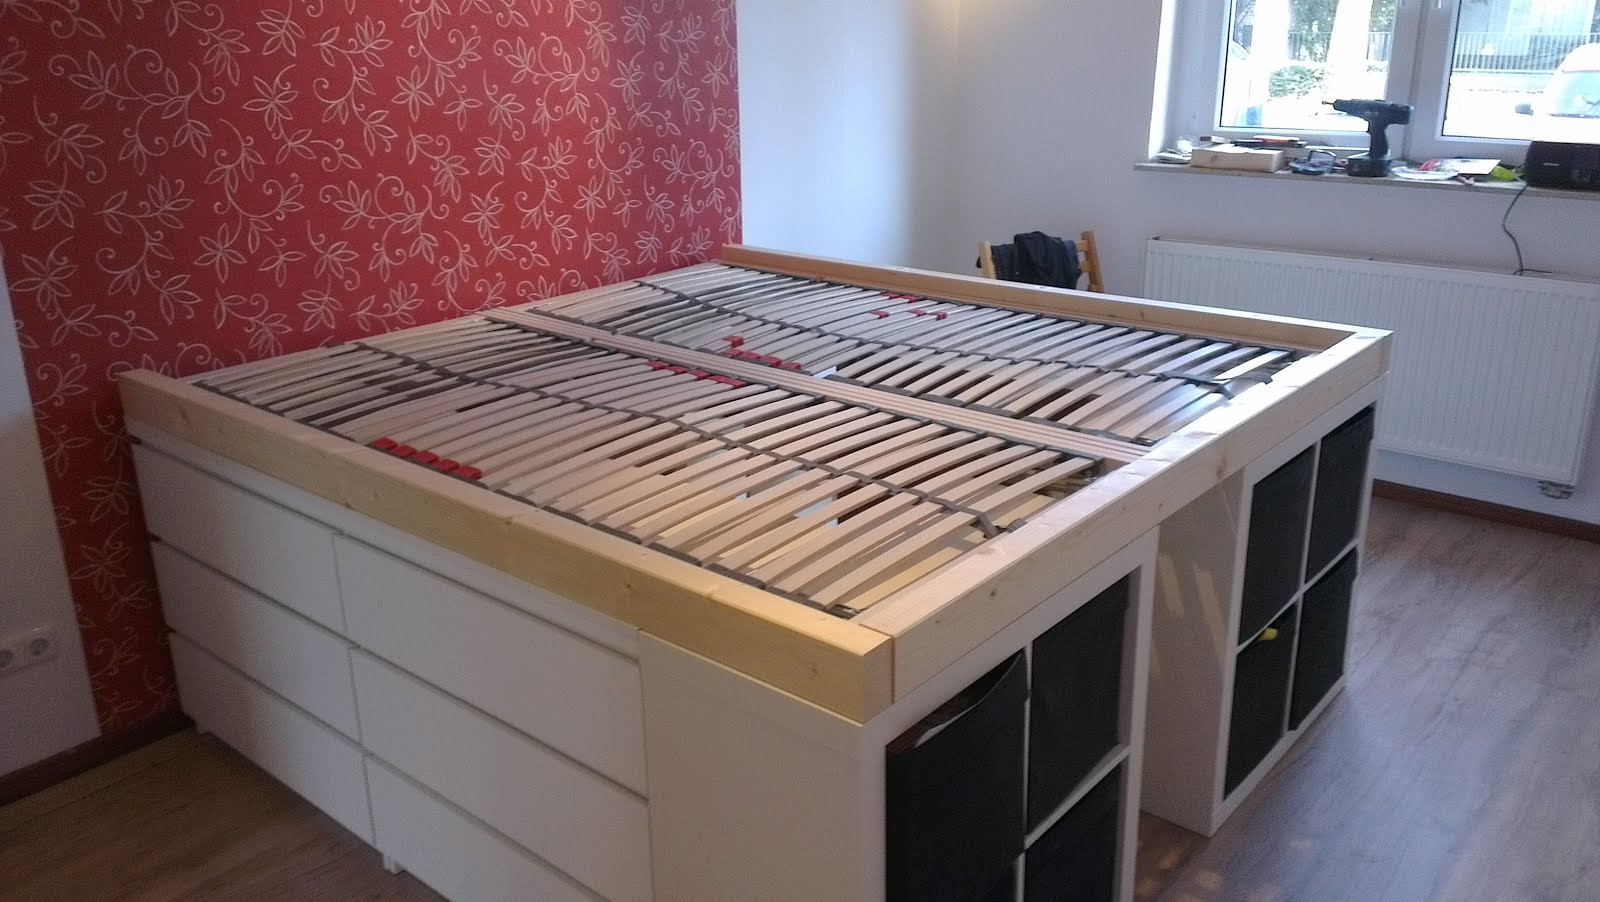 lovely Diy Storage Bed Ikea Part - 14: Images of Storage Bed Ikea Hack